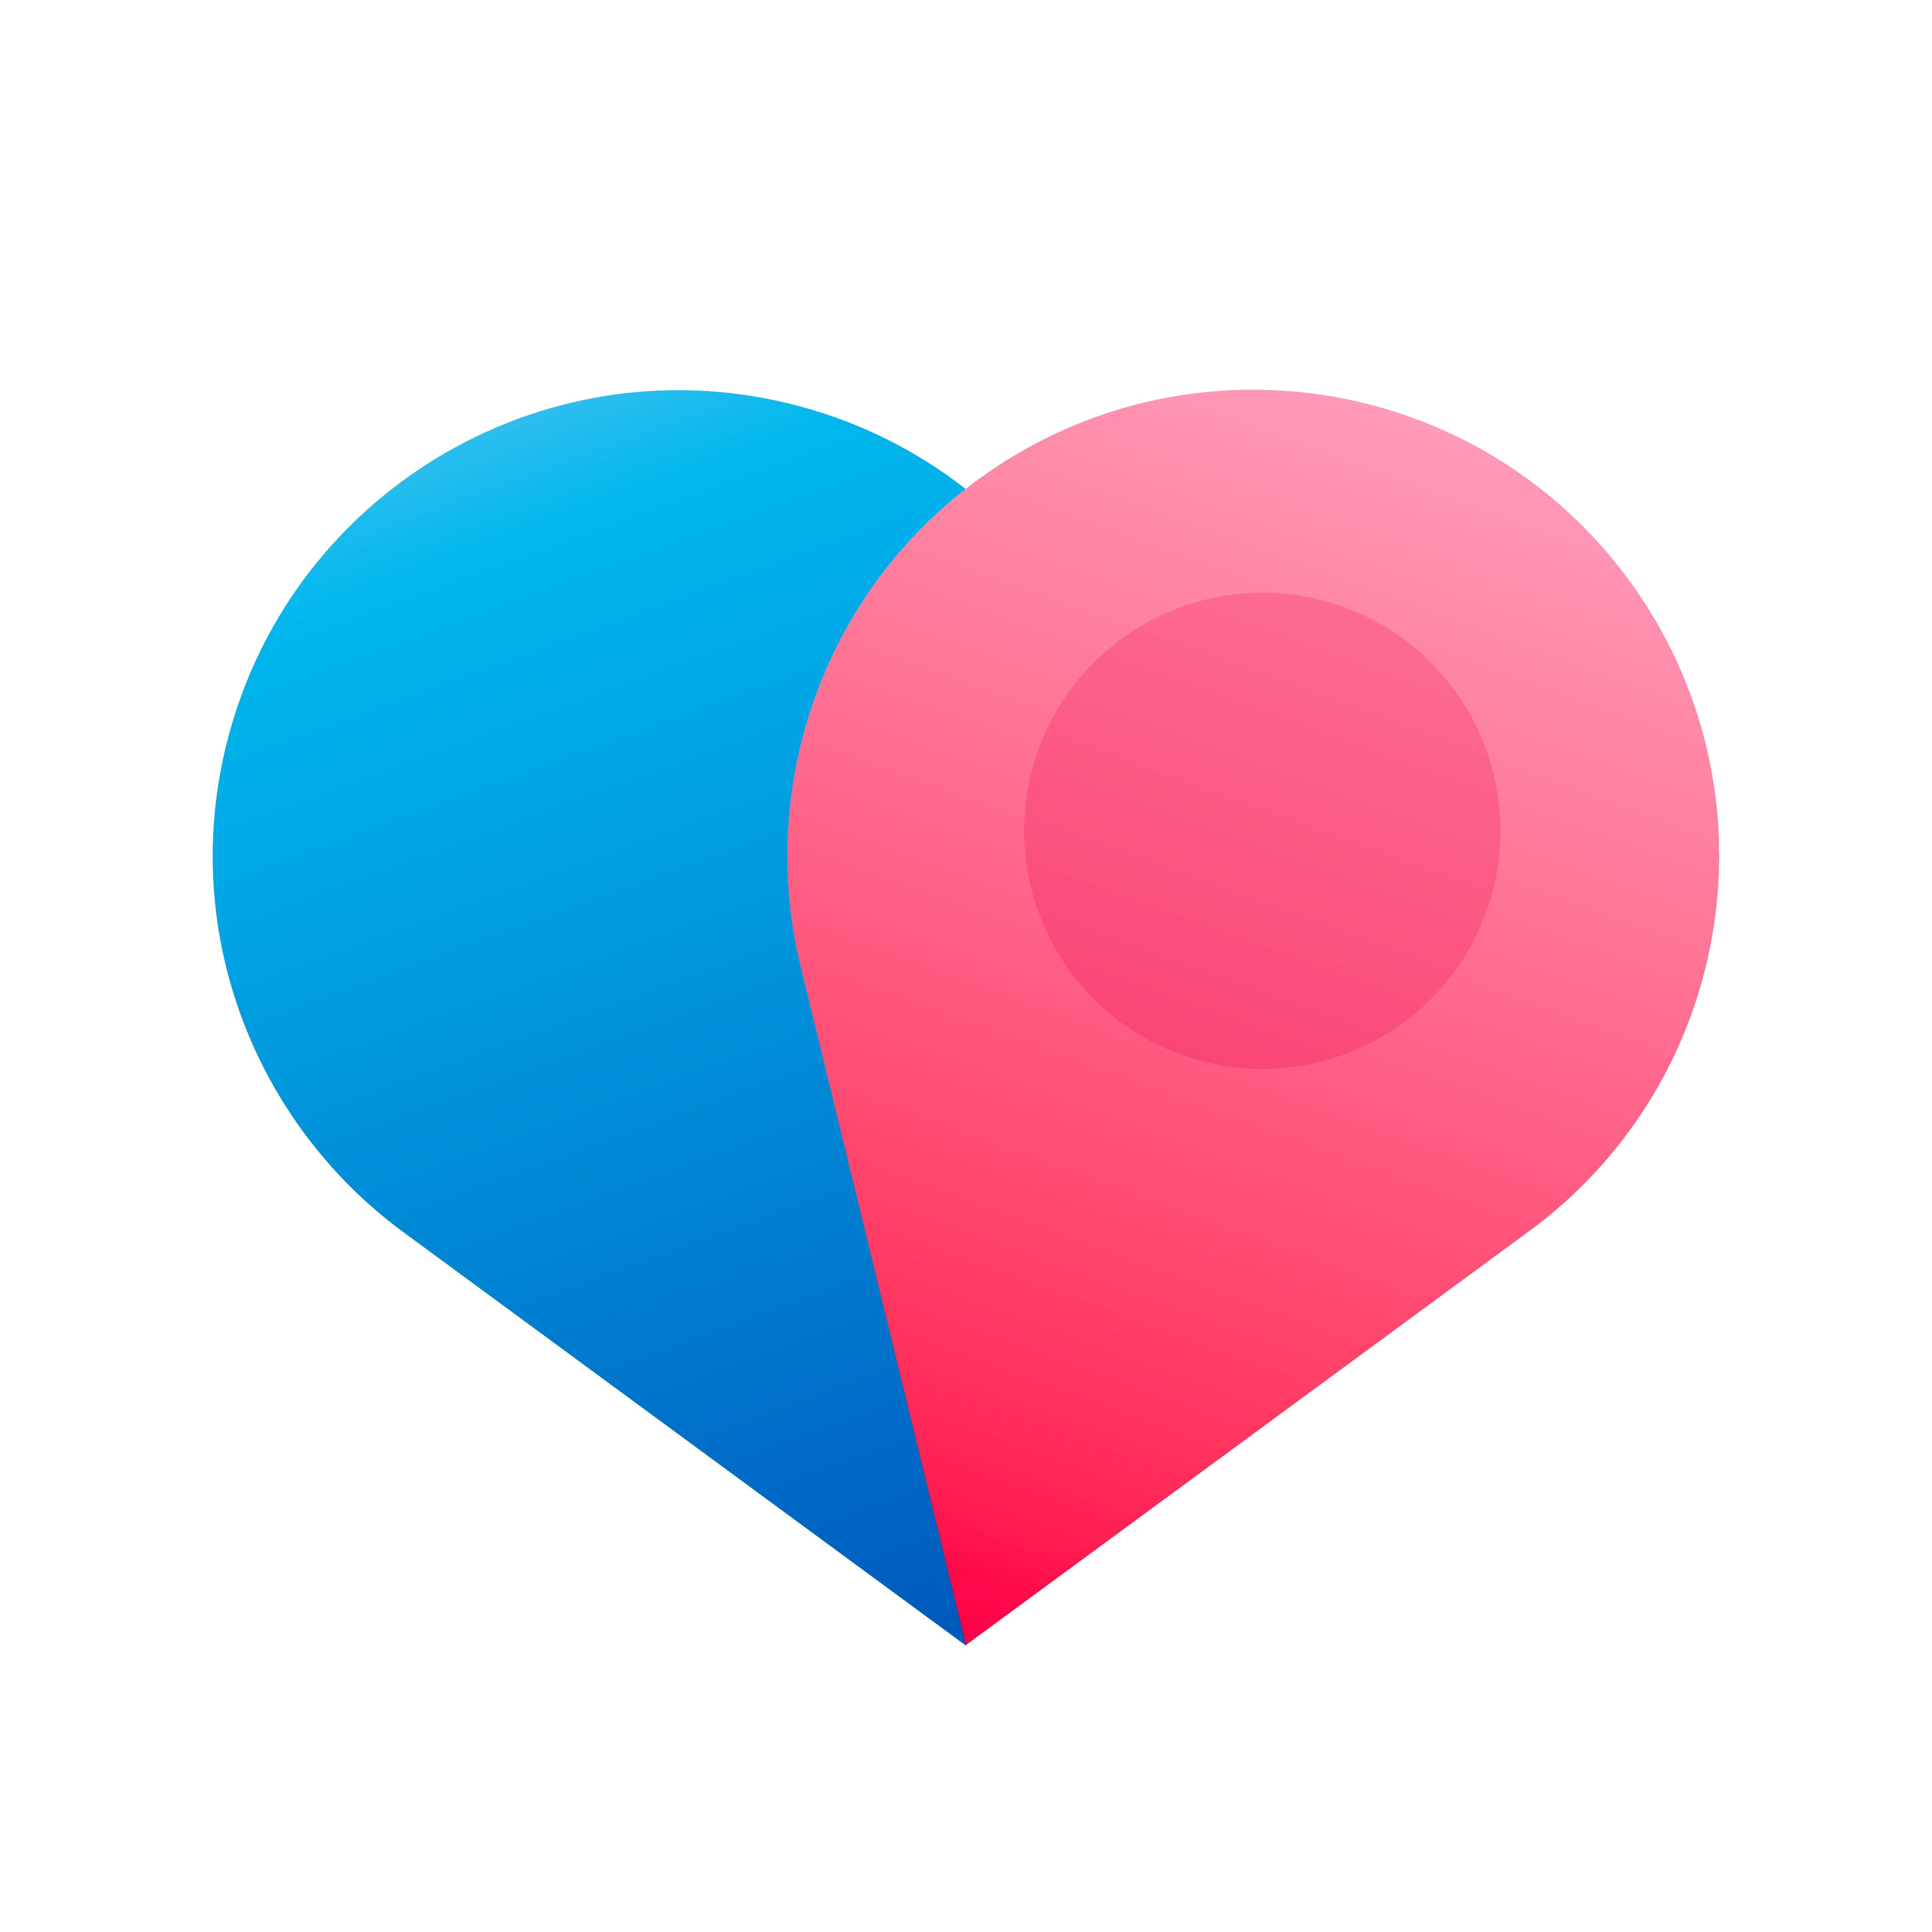 iOS/Android app icon for a new dating app Dater.com